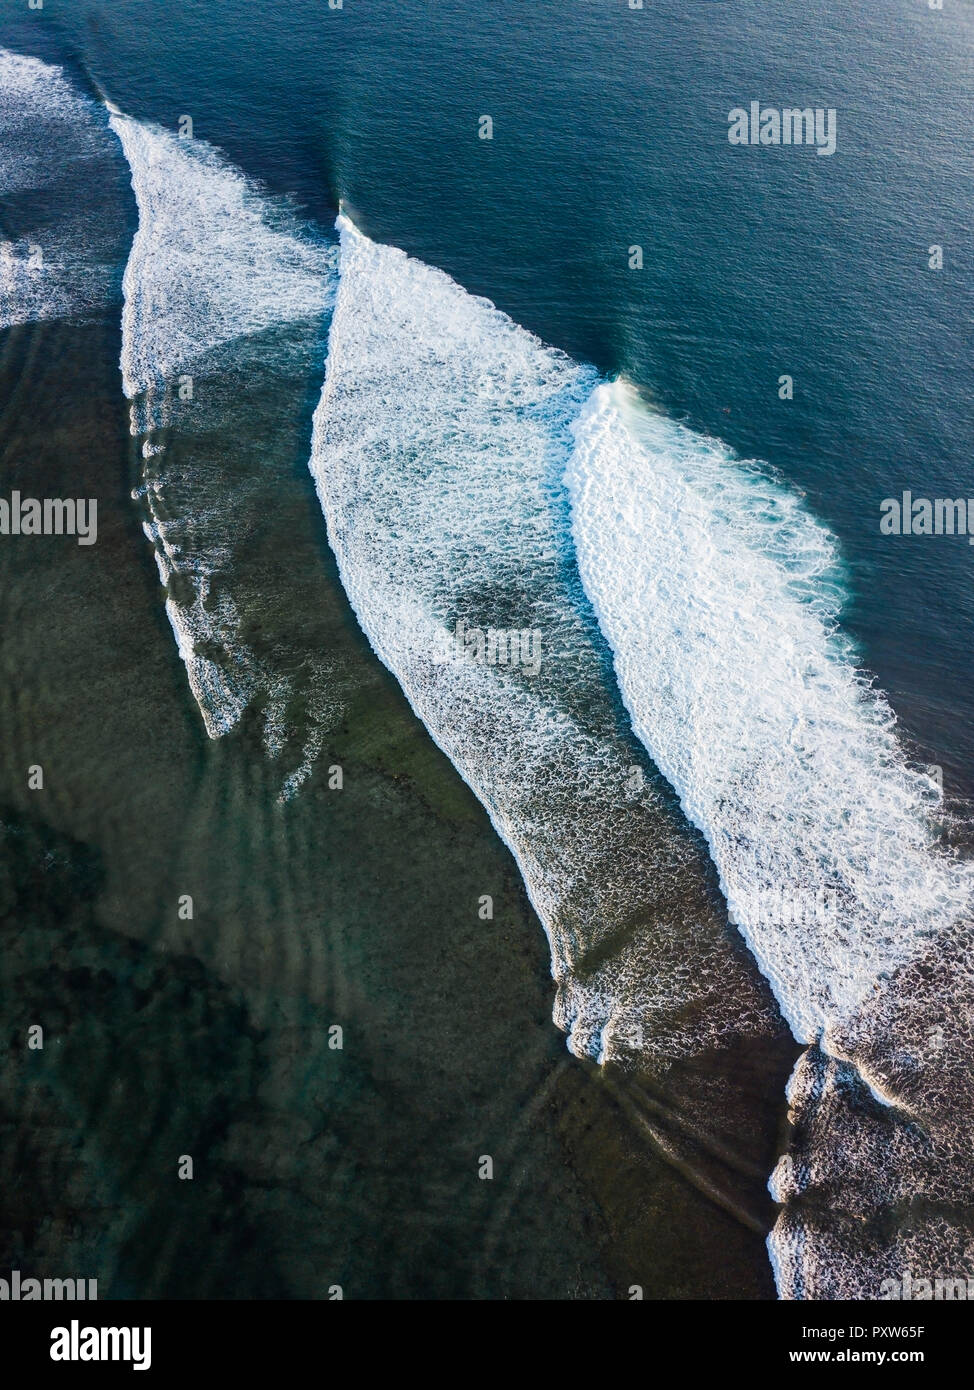 Indonesia, Bali, Aerial view of Indian Ocean, waves Stock Photo